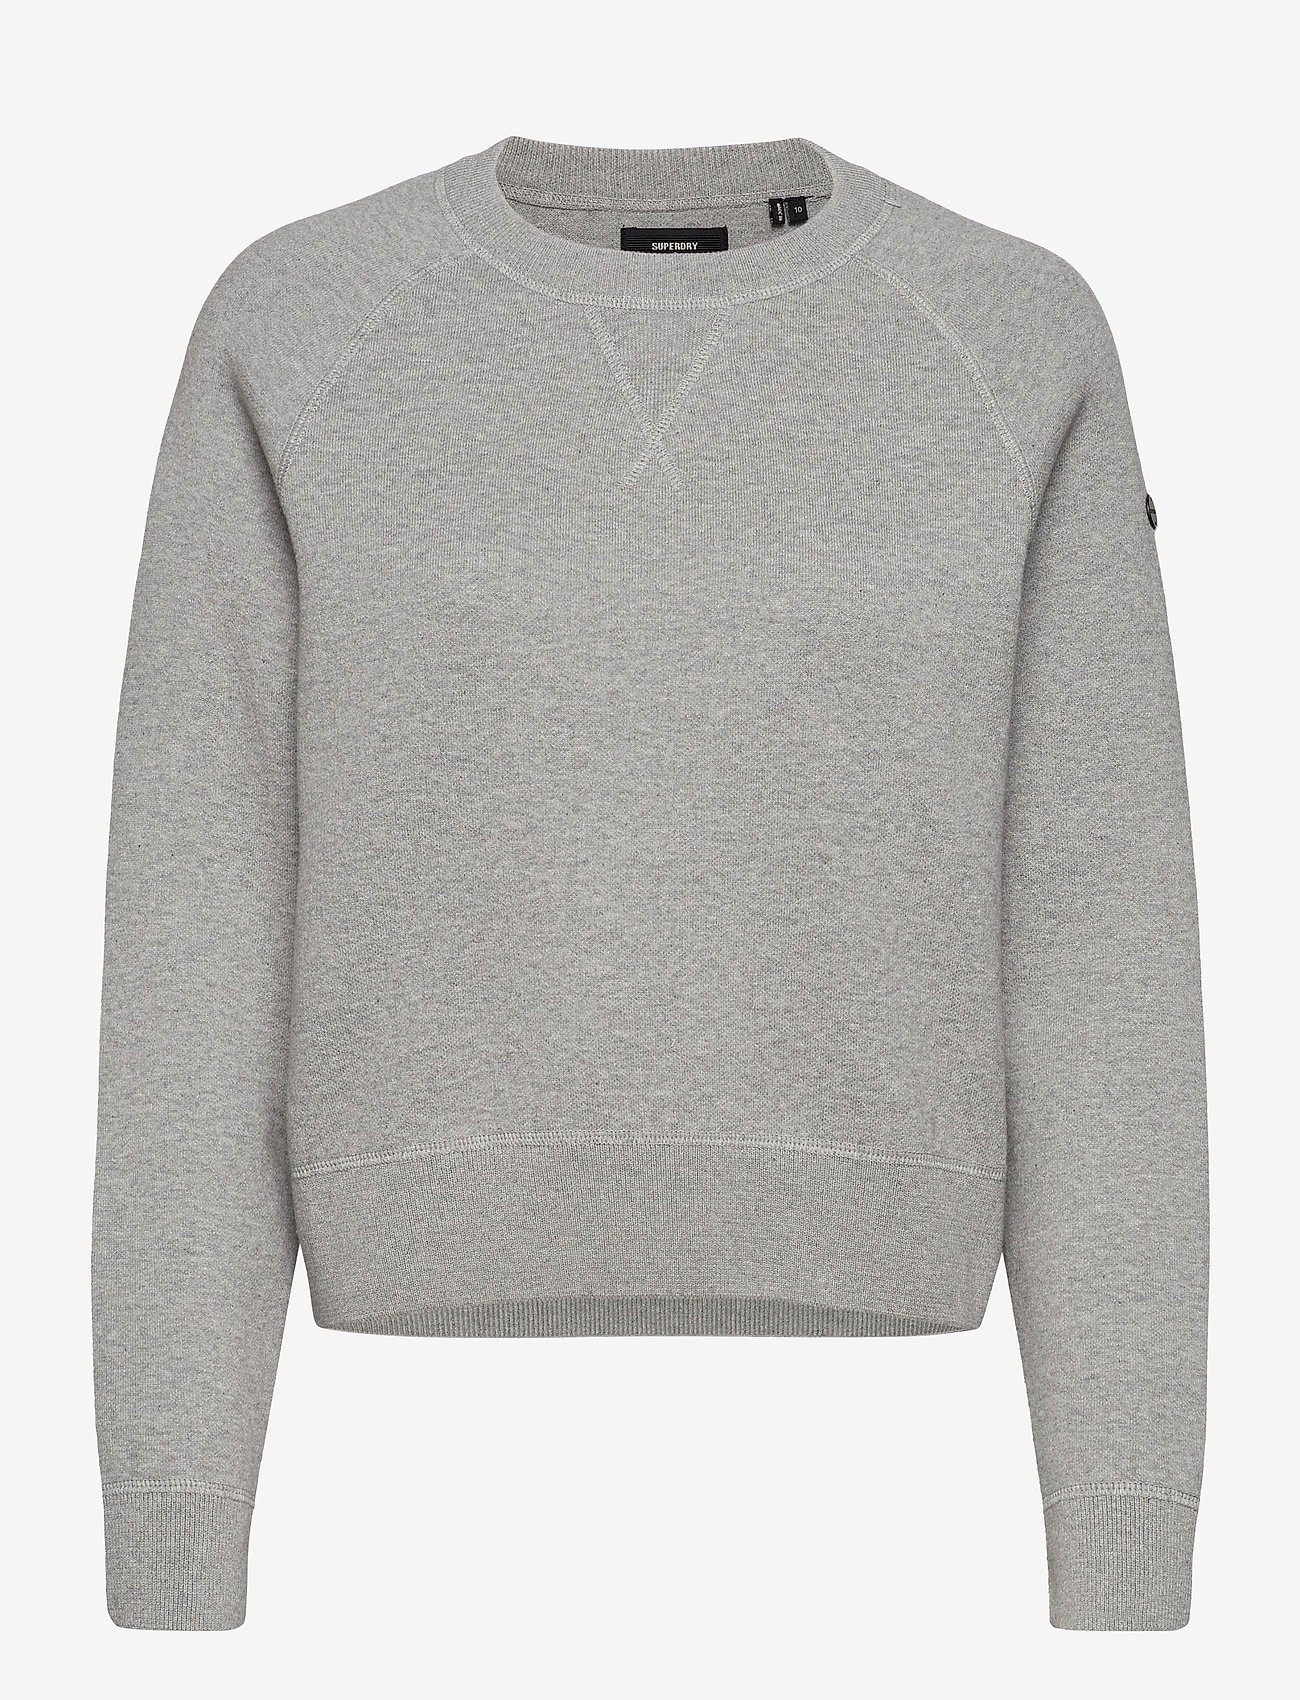 Superdry - ESSENTIAL COTTON CREW - sweaters - mid marl - 0